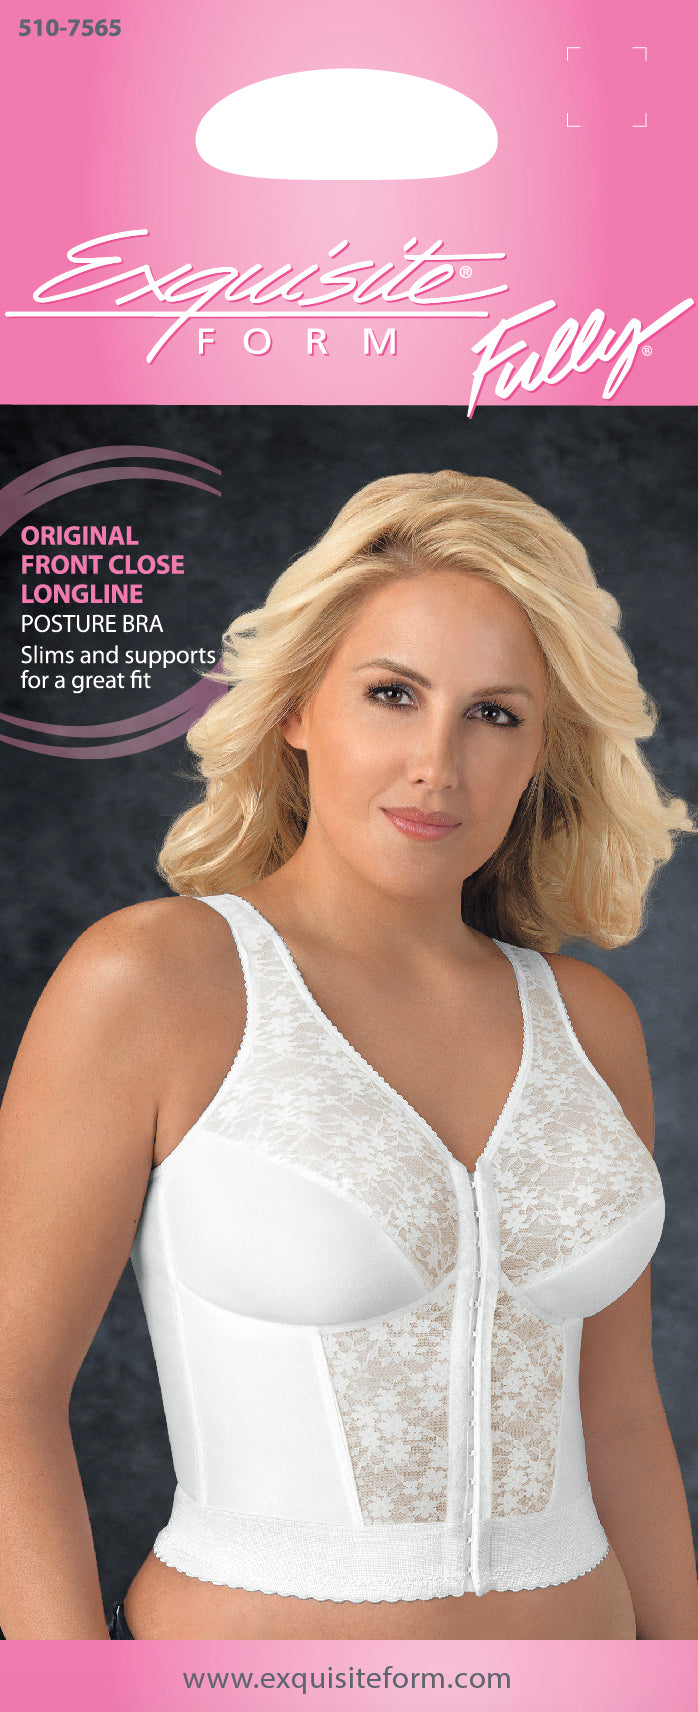 FULLY® Front Close Longline Posture Bra with Lace